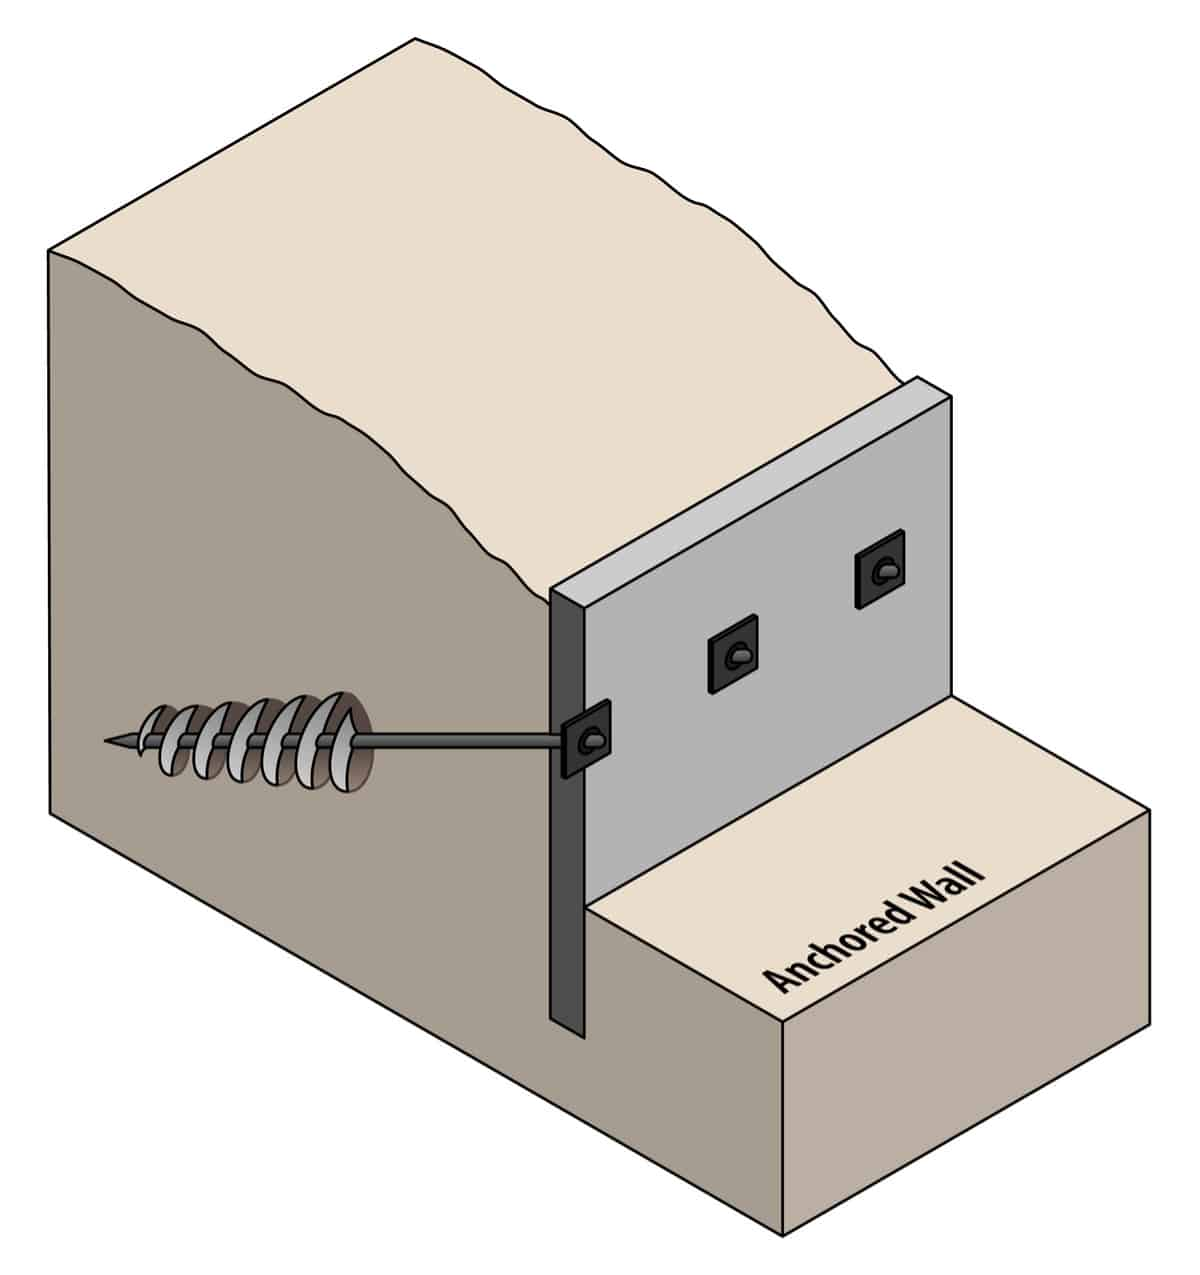 Screw anchor retaining wall diagram